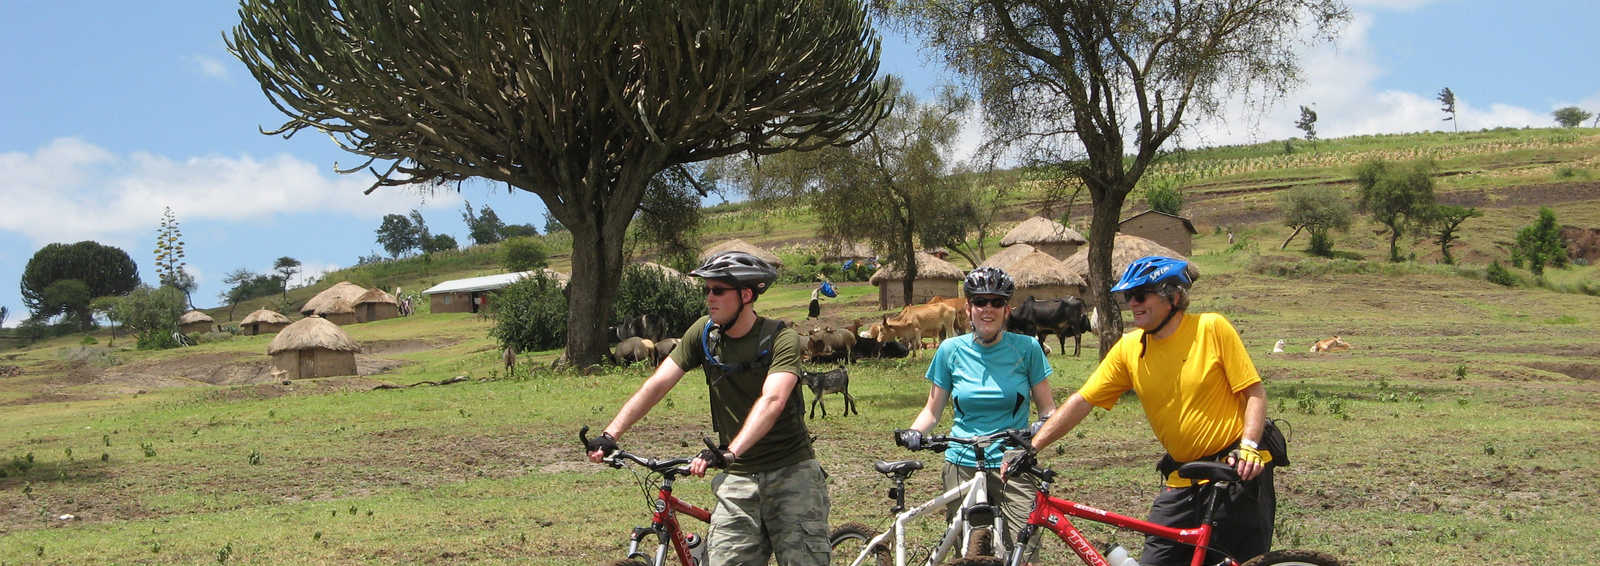 Cyclists and local settlement near Arusha